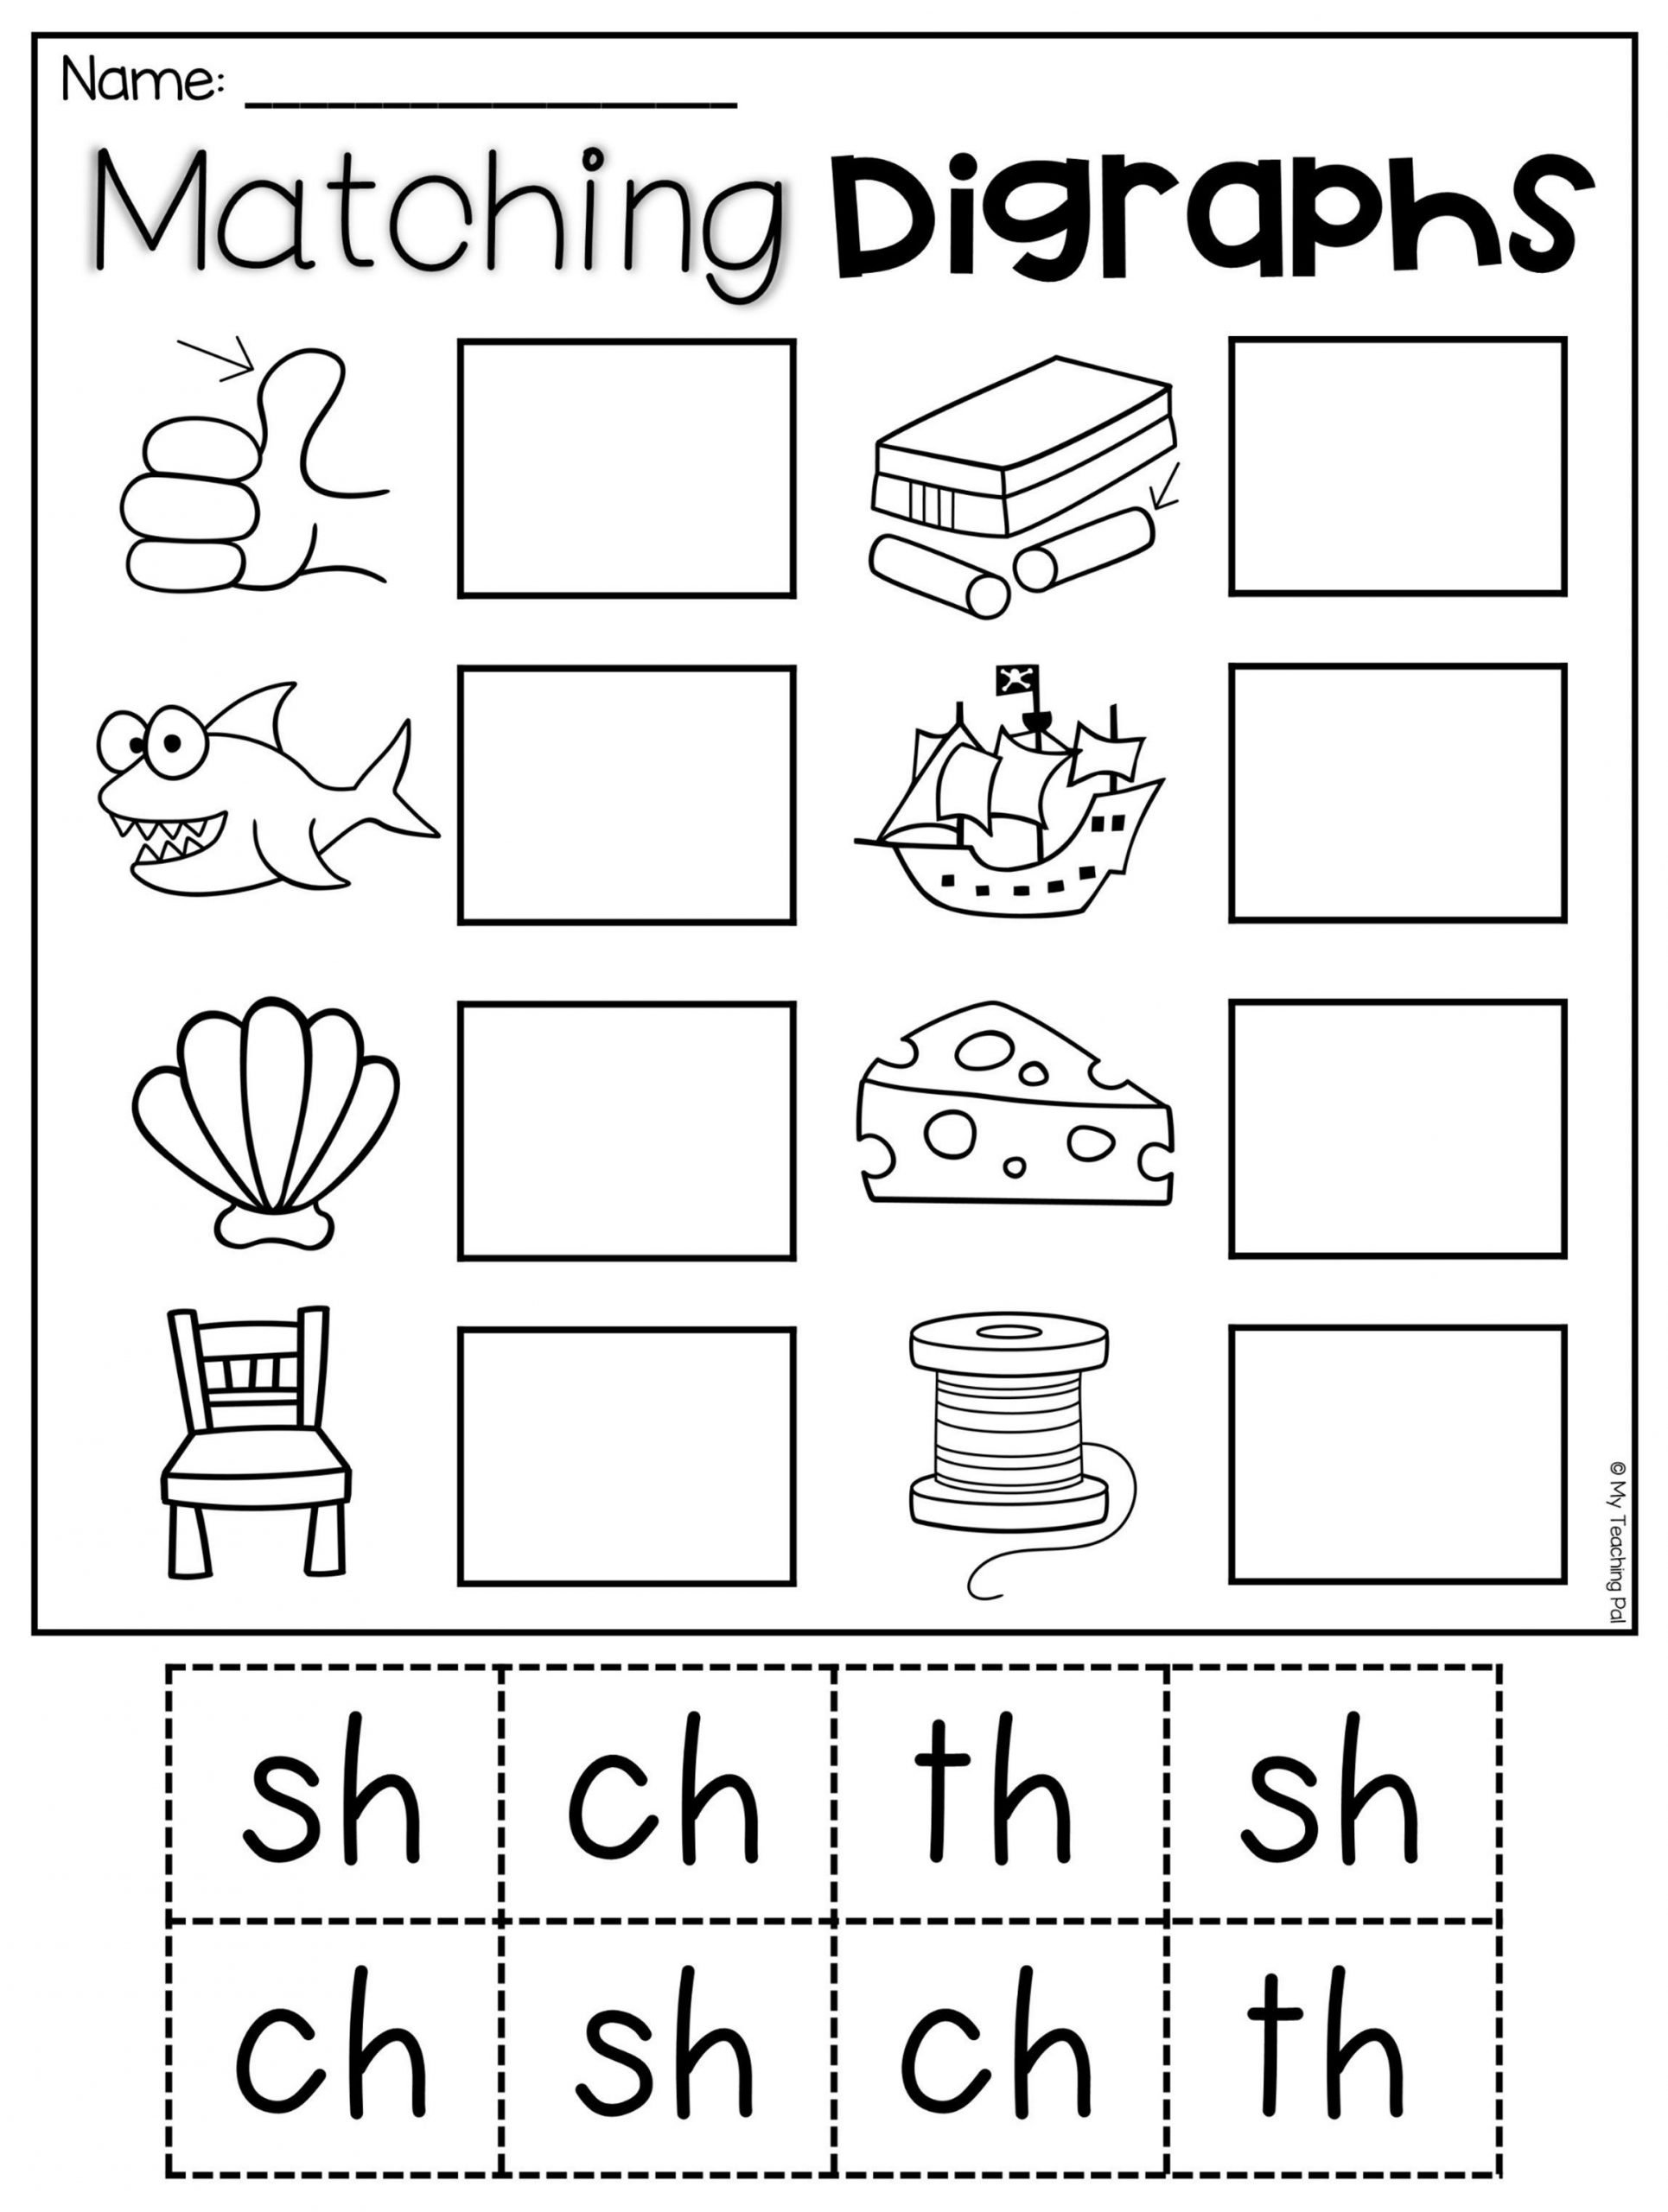 Th Worksheets for Kindergarten Digraph Worksheet Packet Ch Sh Th Wh Ph